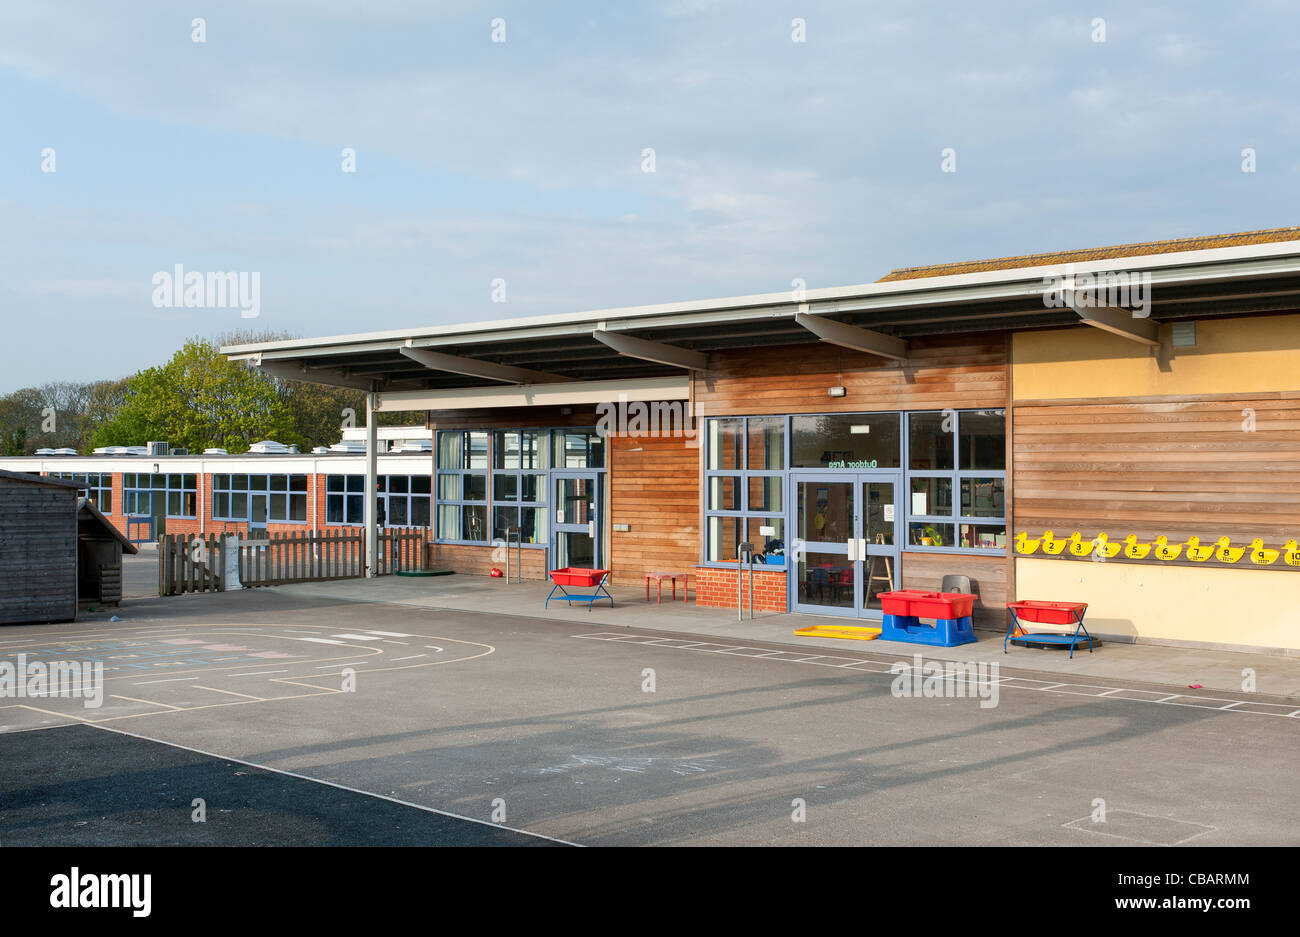 School building in Kent, UK, this type of school is for infant/junior children aged 5-11years old - Stock Image